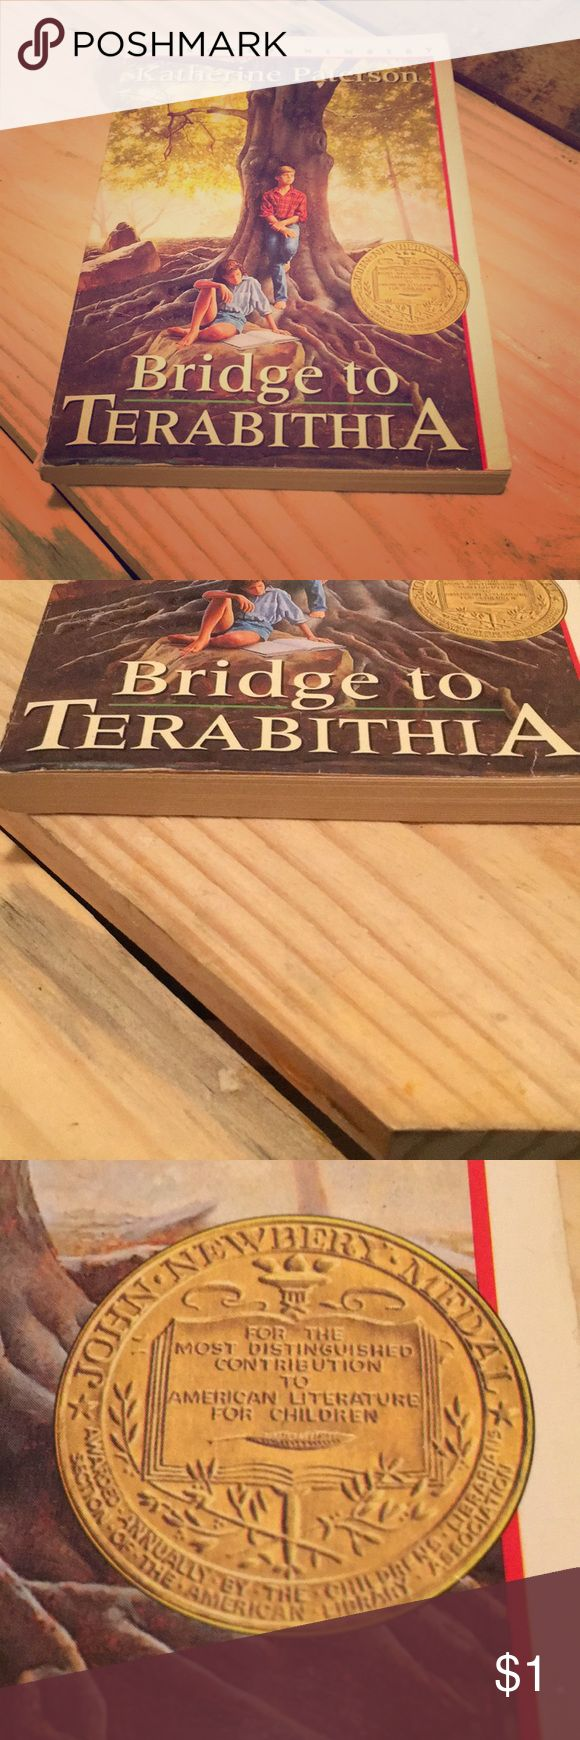 It is a old book. Had some wear but still good. Old book but still in good condition. Newberry medal award. Called Bridge to Terabithia. Author Katherine Paterson. 📚 Other